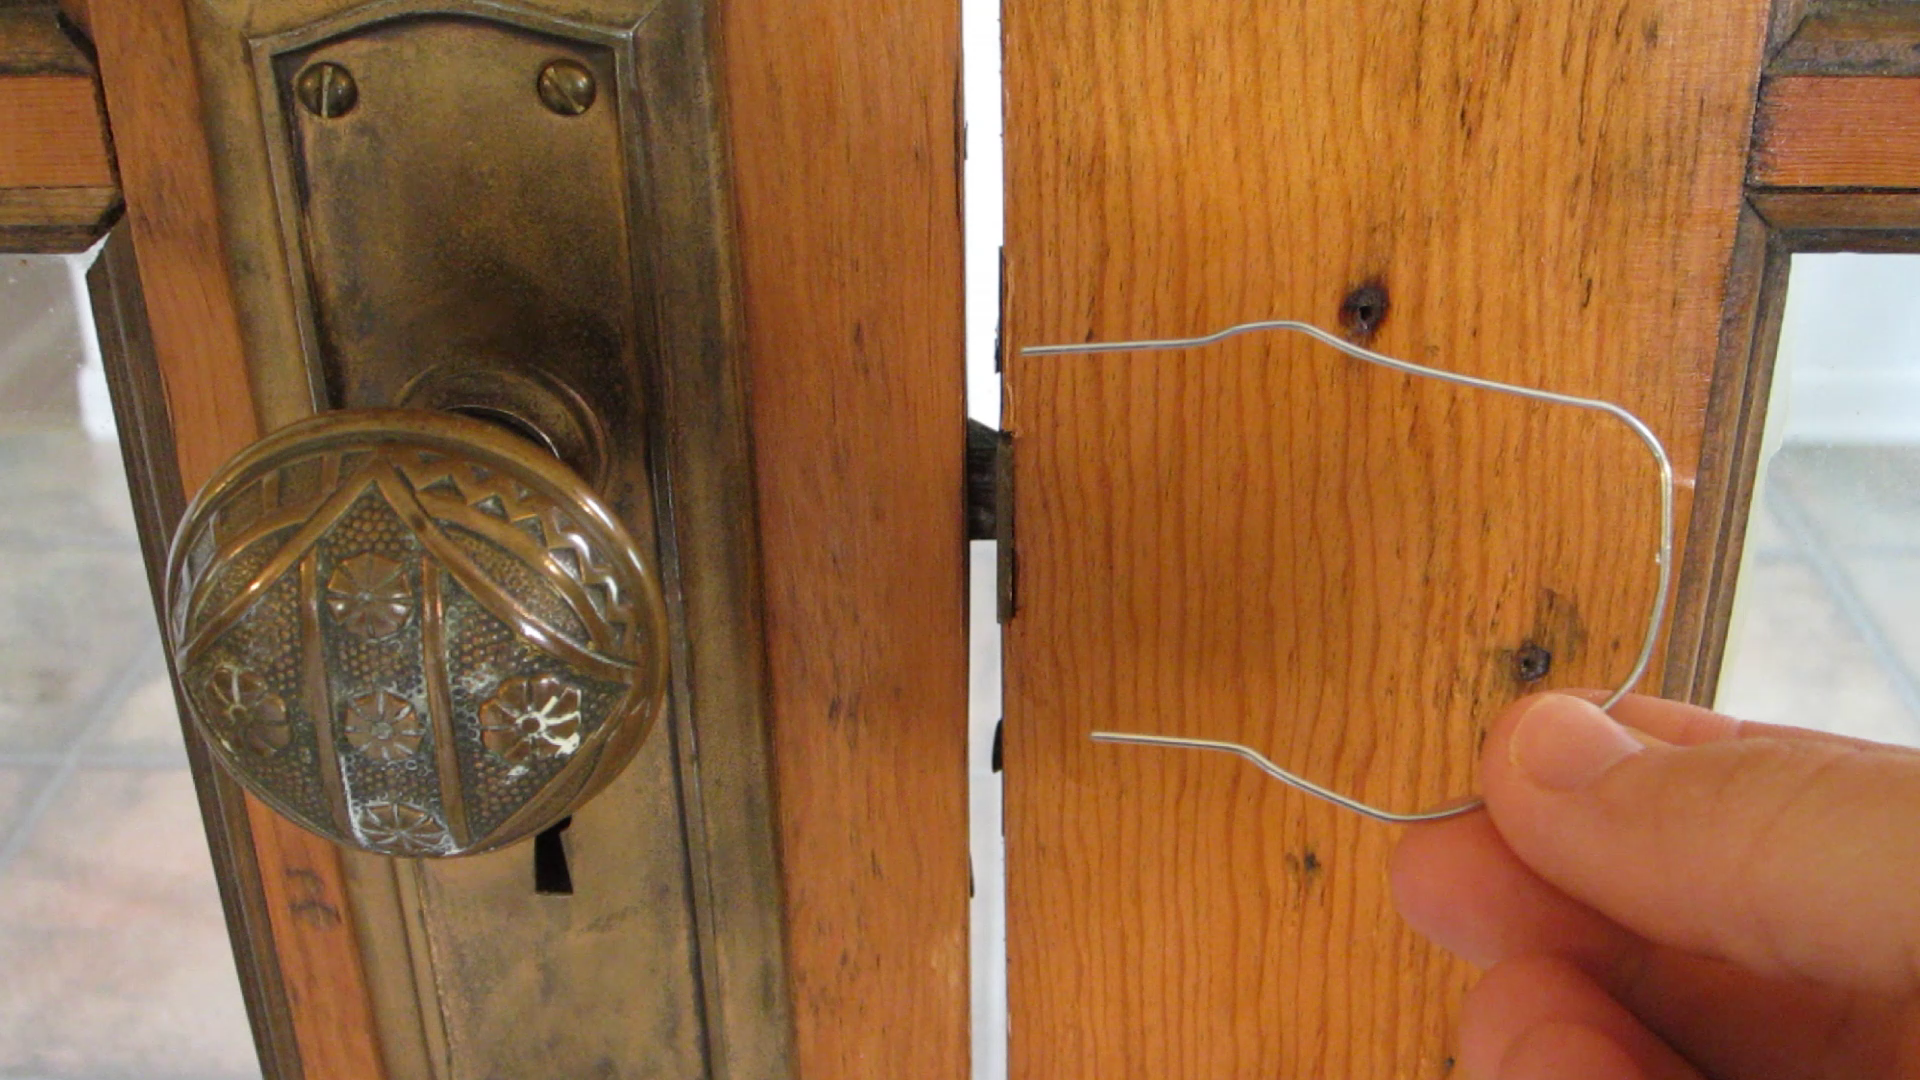 How to Pick Simple Locks/Latches with a Paper Clip